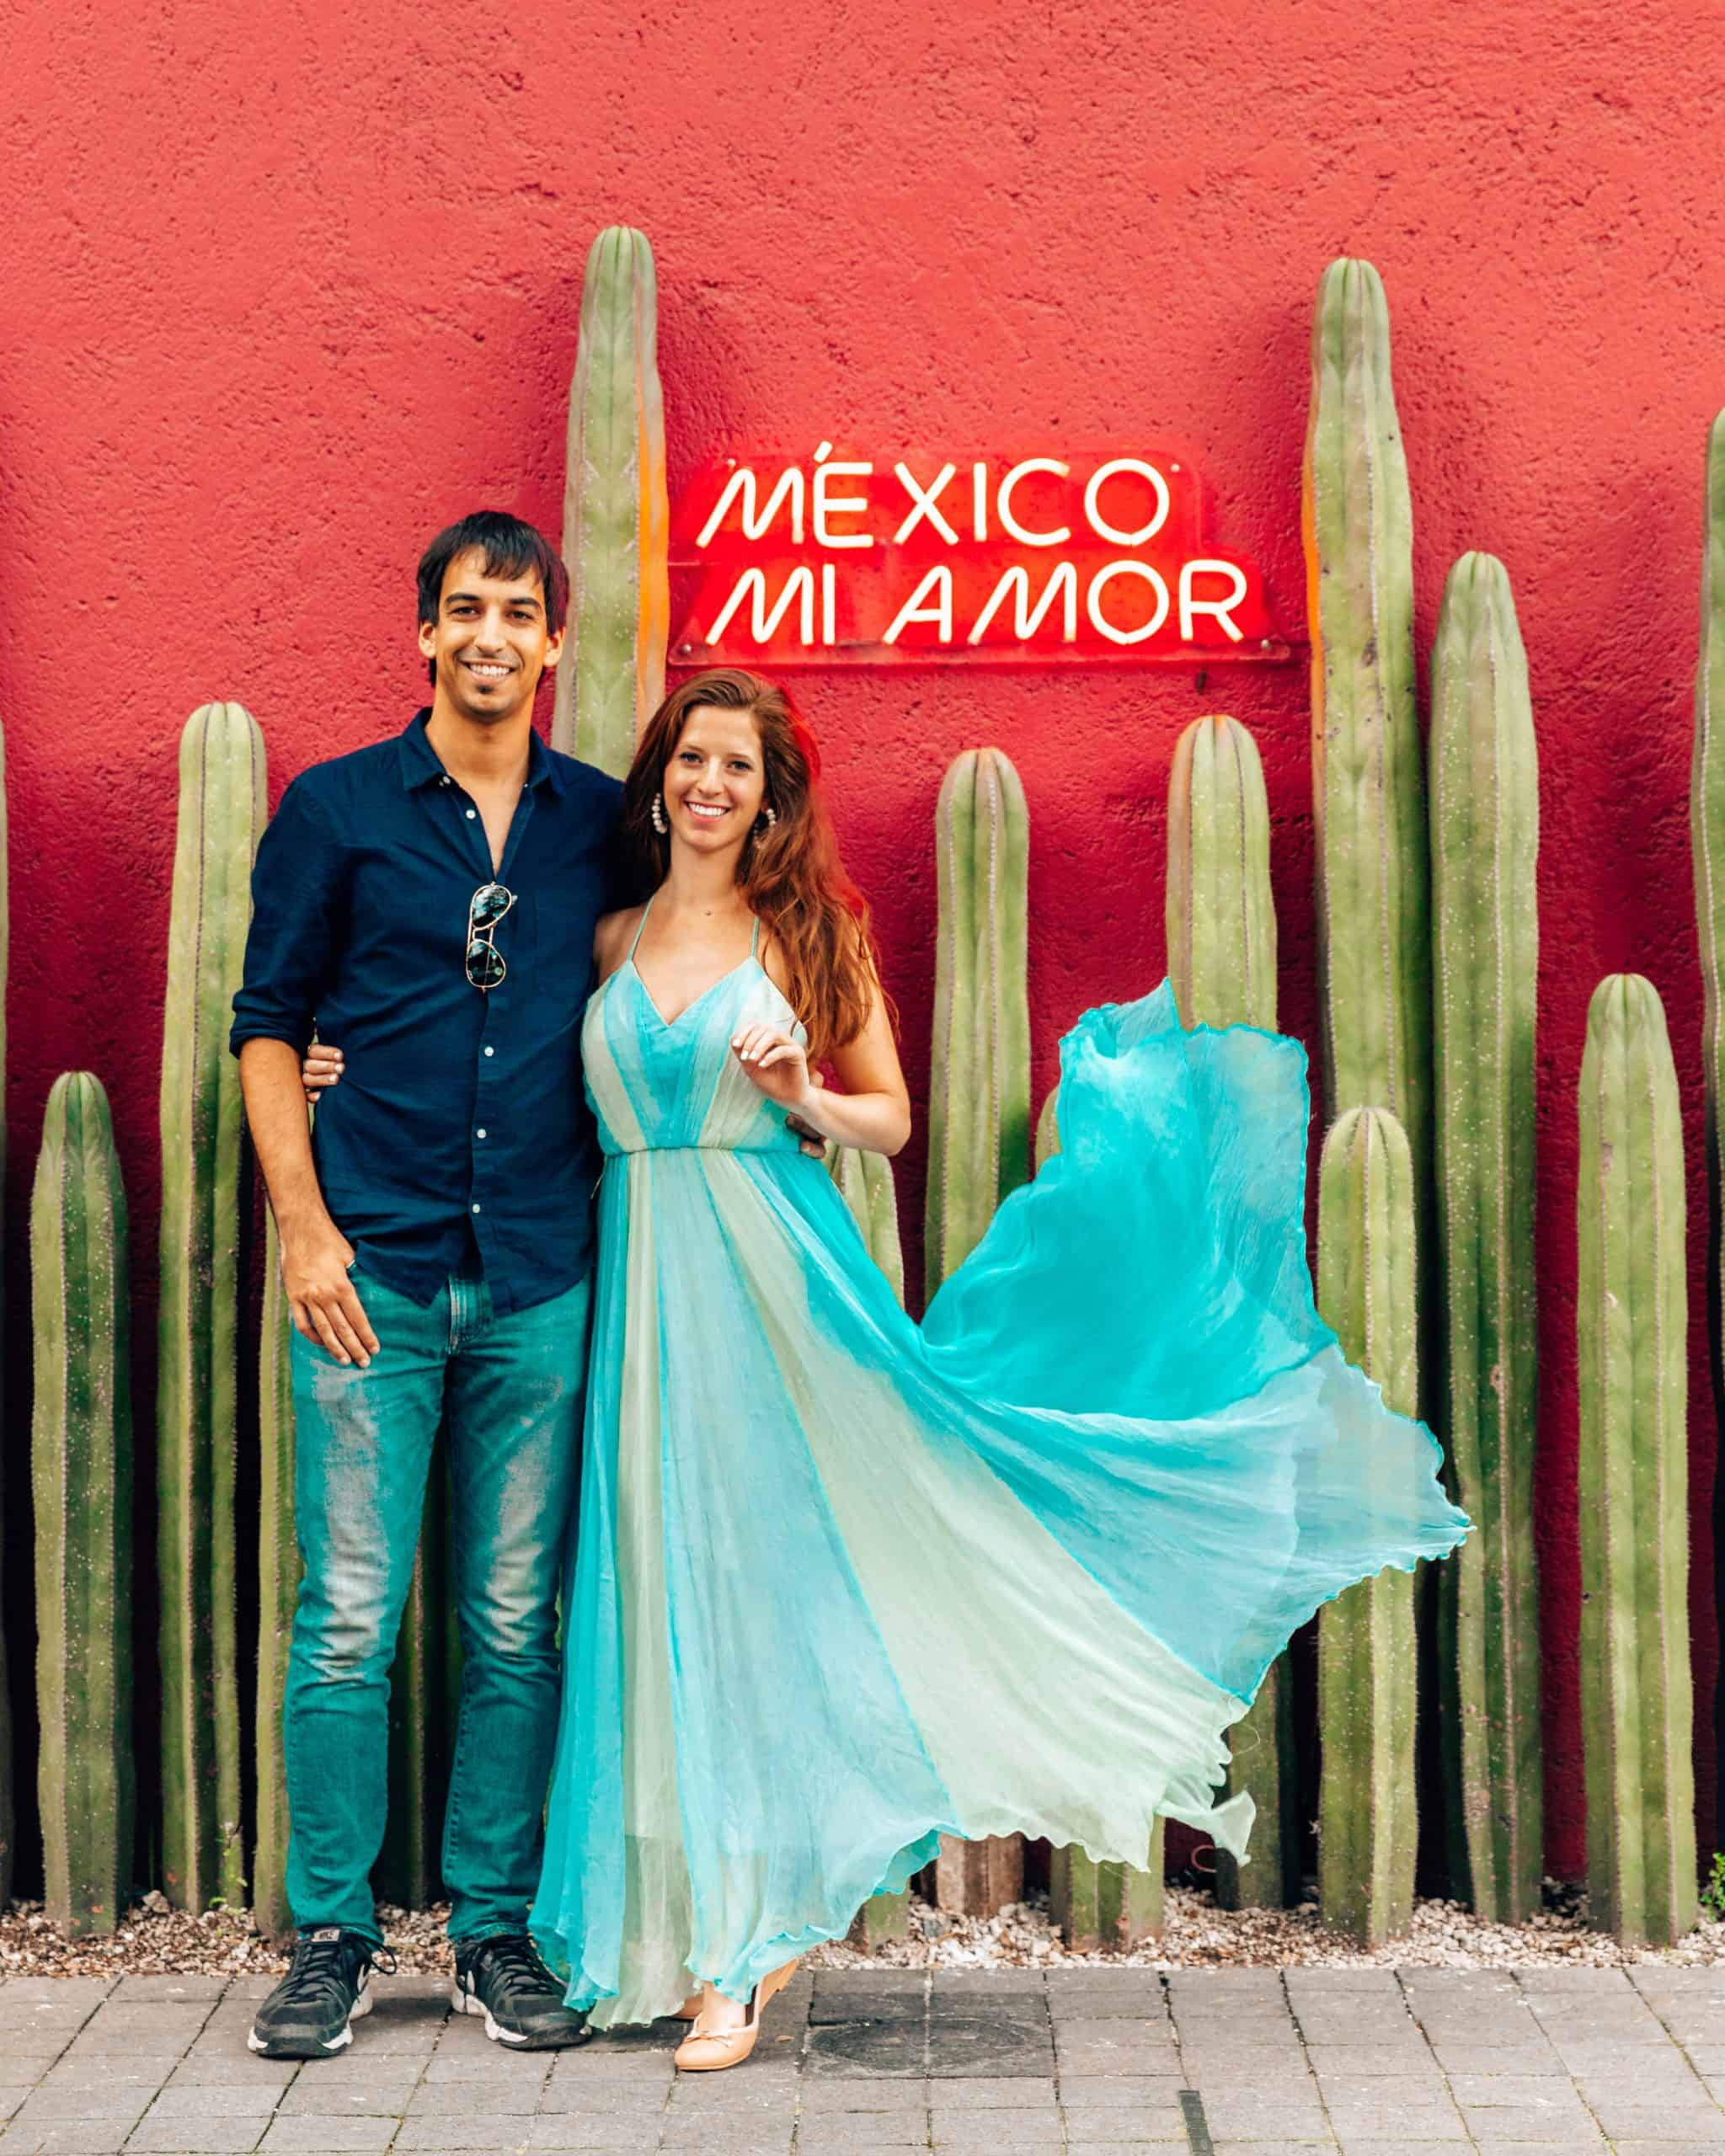 Kyle and Bettina at Mexico Mi Amor Mural in Mexico City